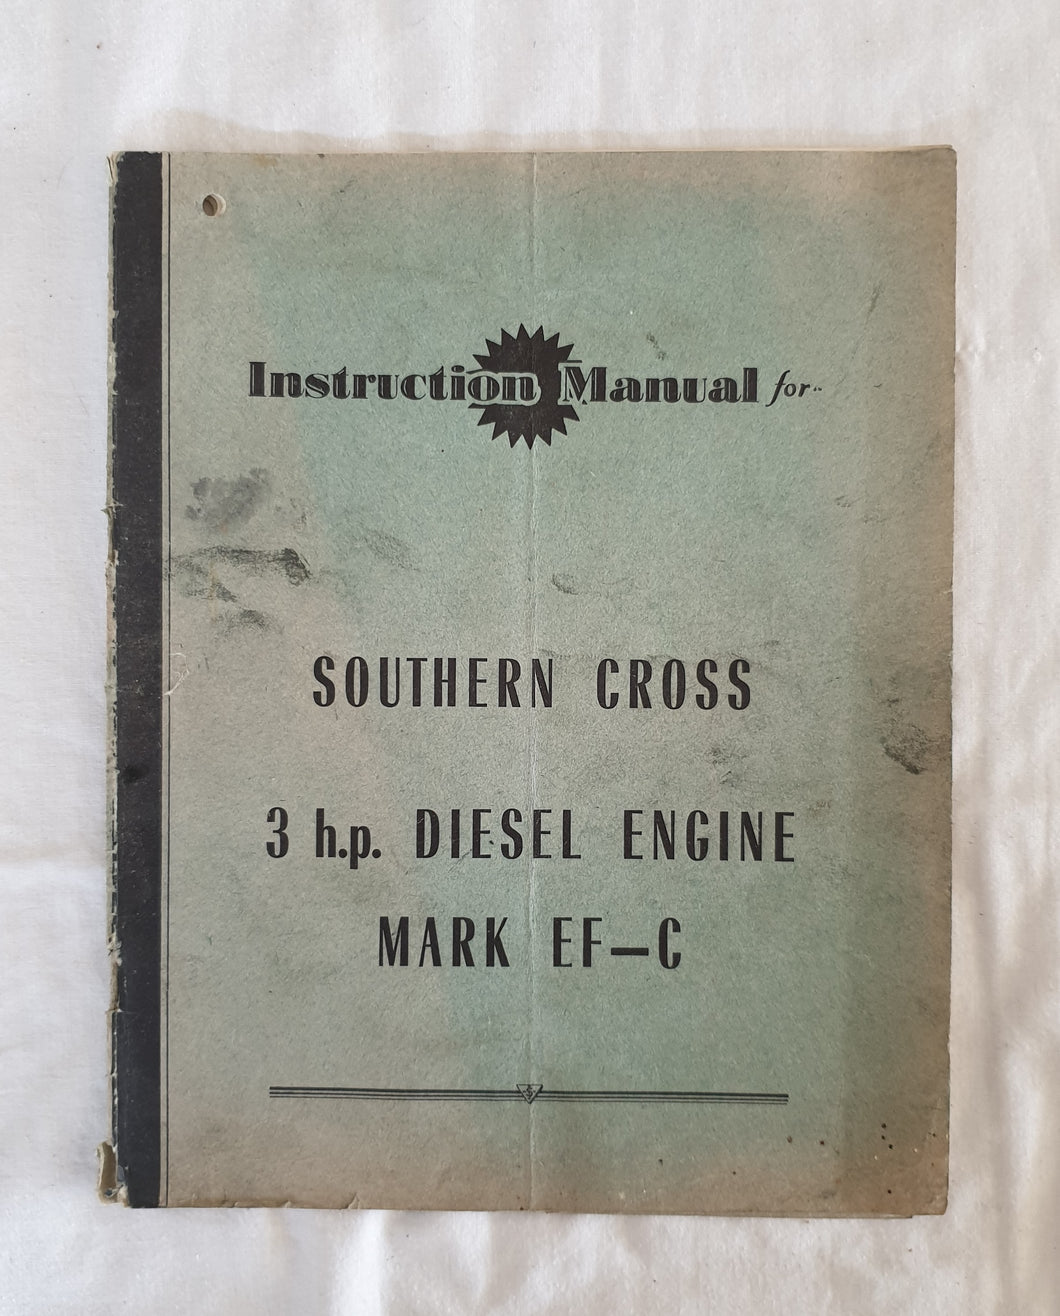 Instruction Manual for Southern Cross 3 h.p. Diesel Engine Mark EF-C